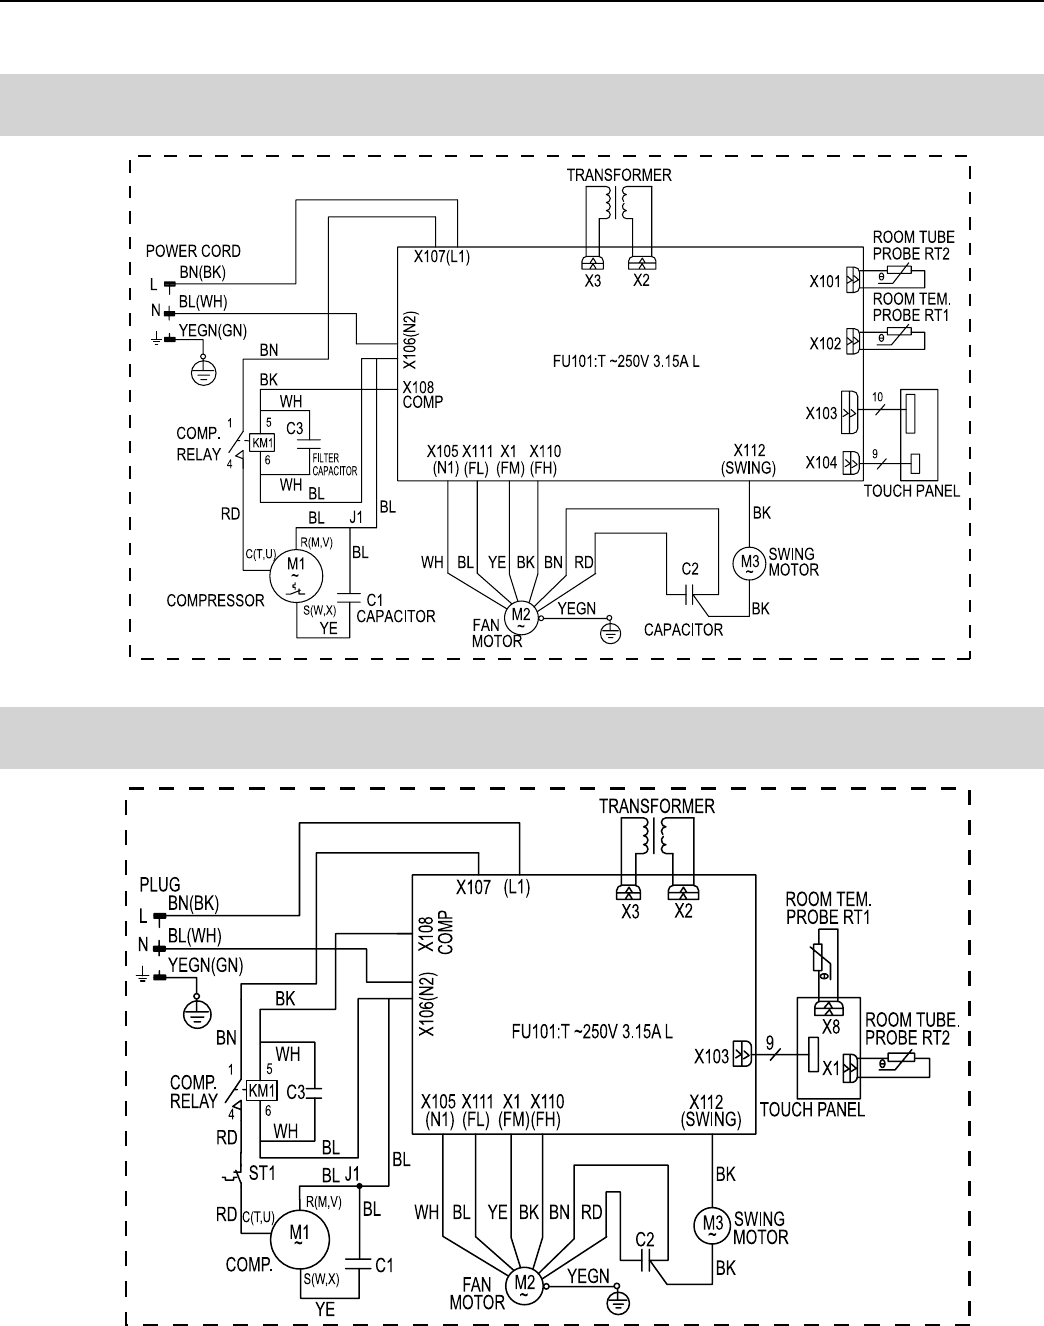 Friedrich Air Conditioner Cp14n10 Users Manual Wiring Diagrams 6